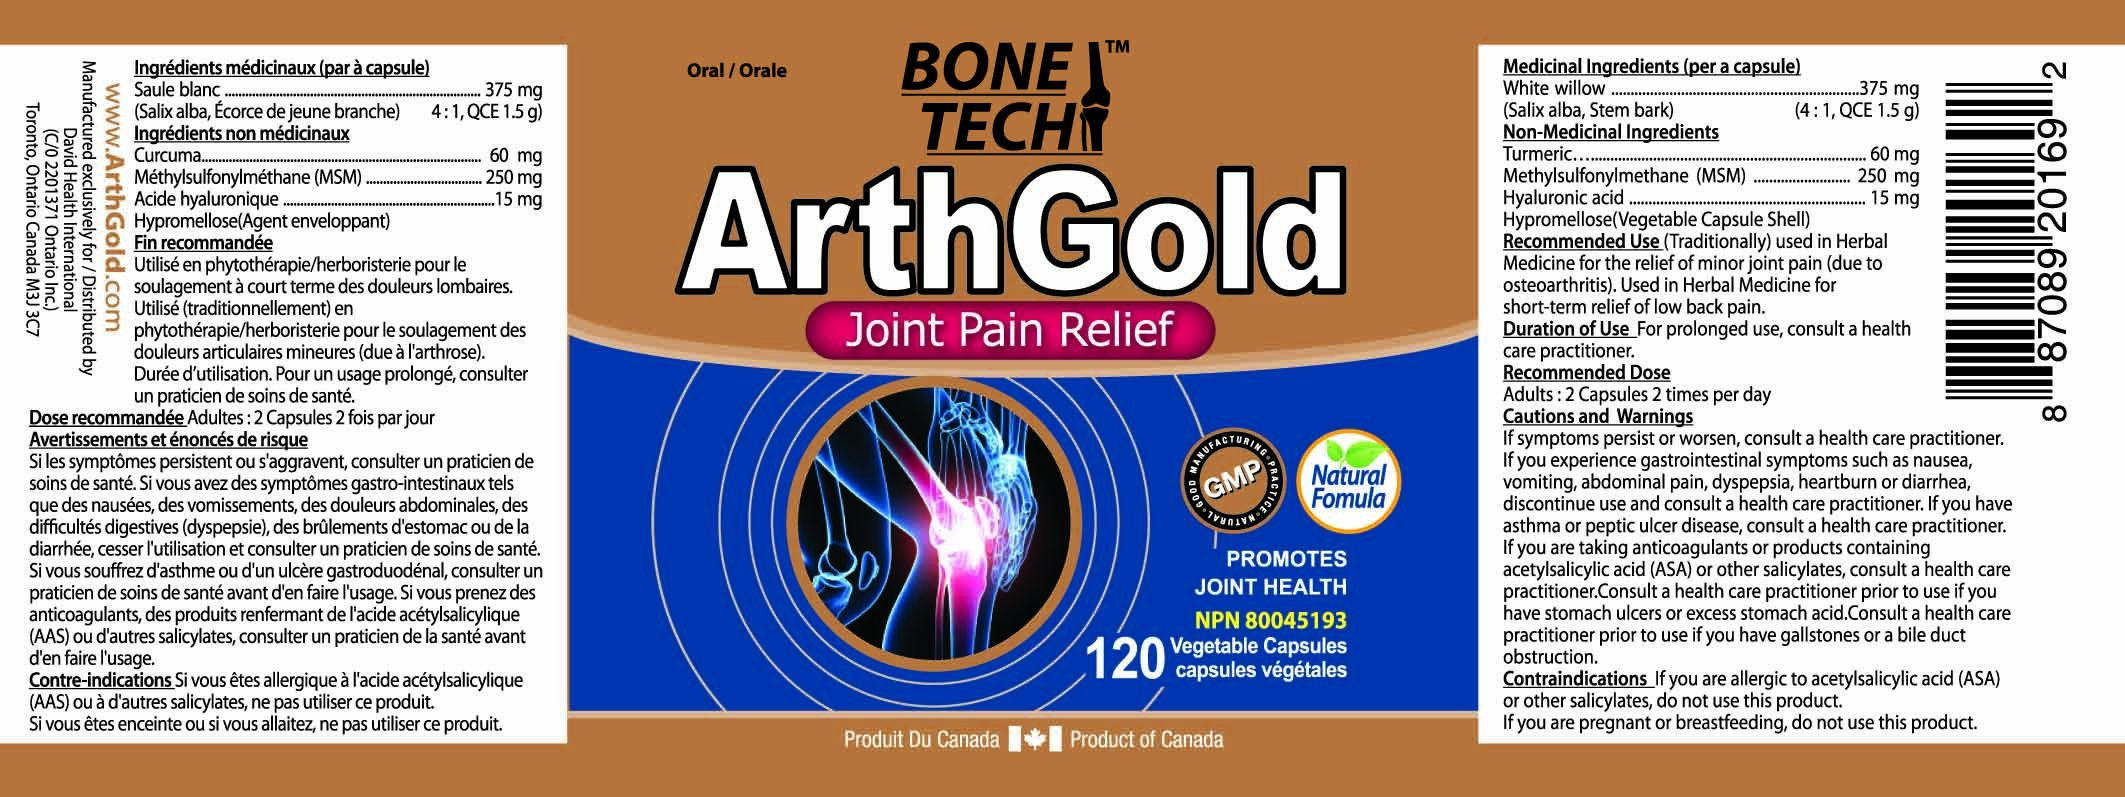 ArthGold Joint Pain Relief 850mg 120 Vcaps